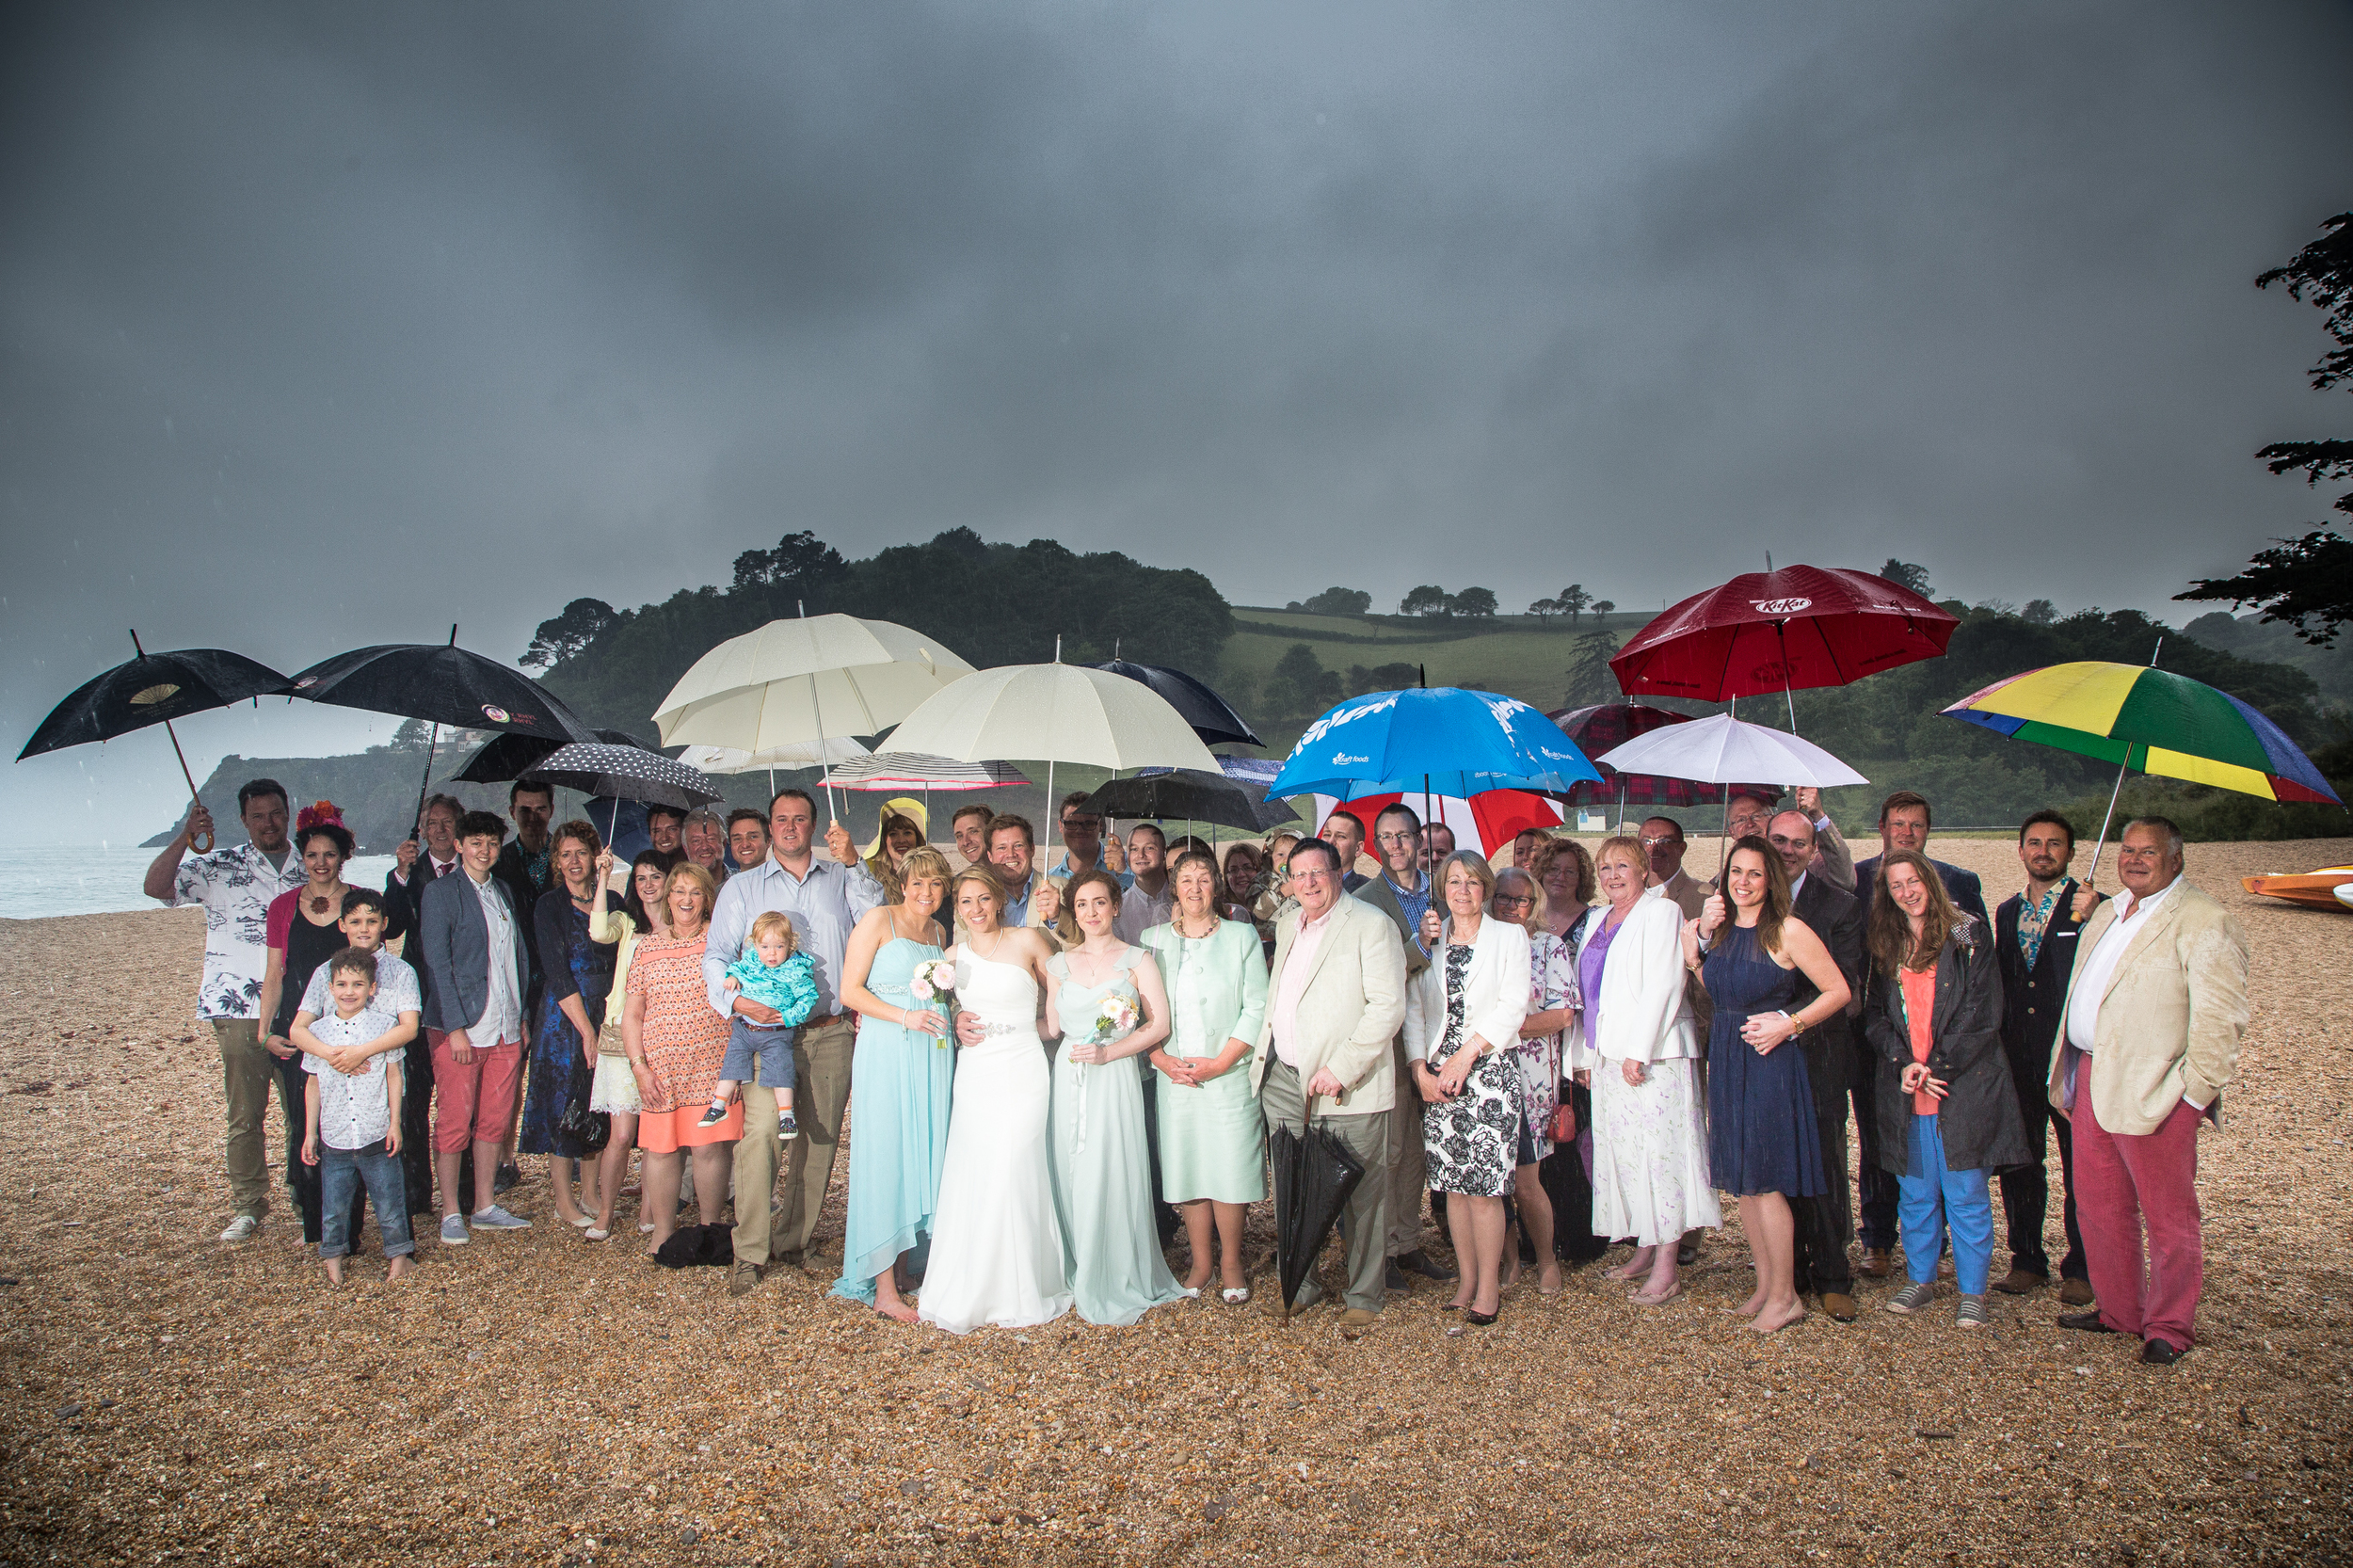 dartmouth wedding devon group shot formal 1